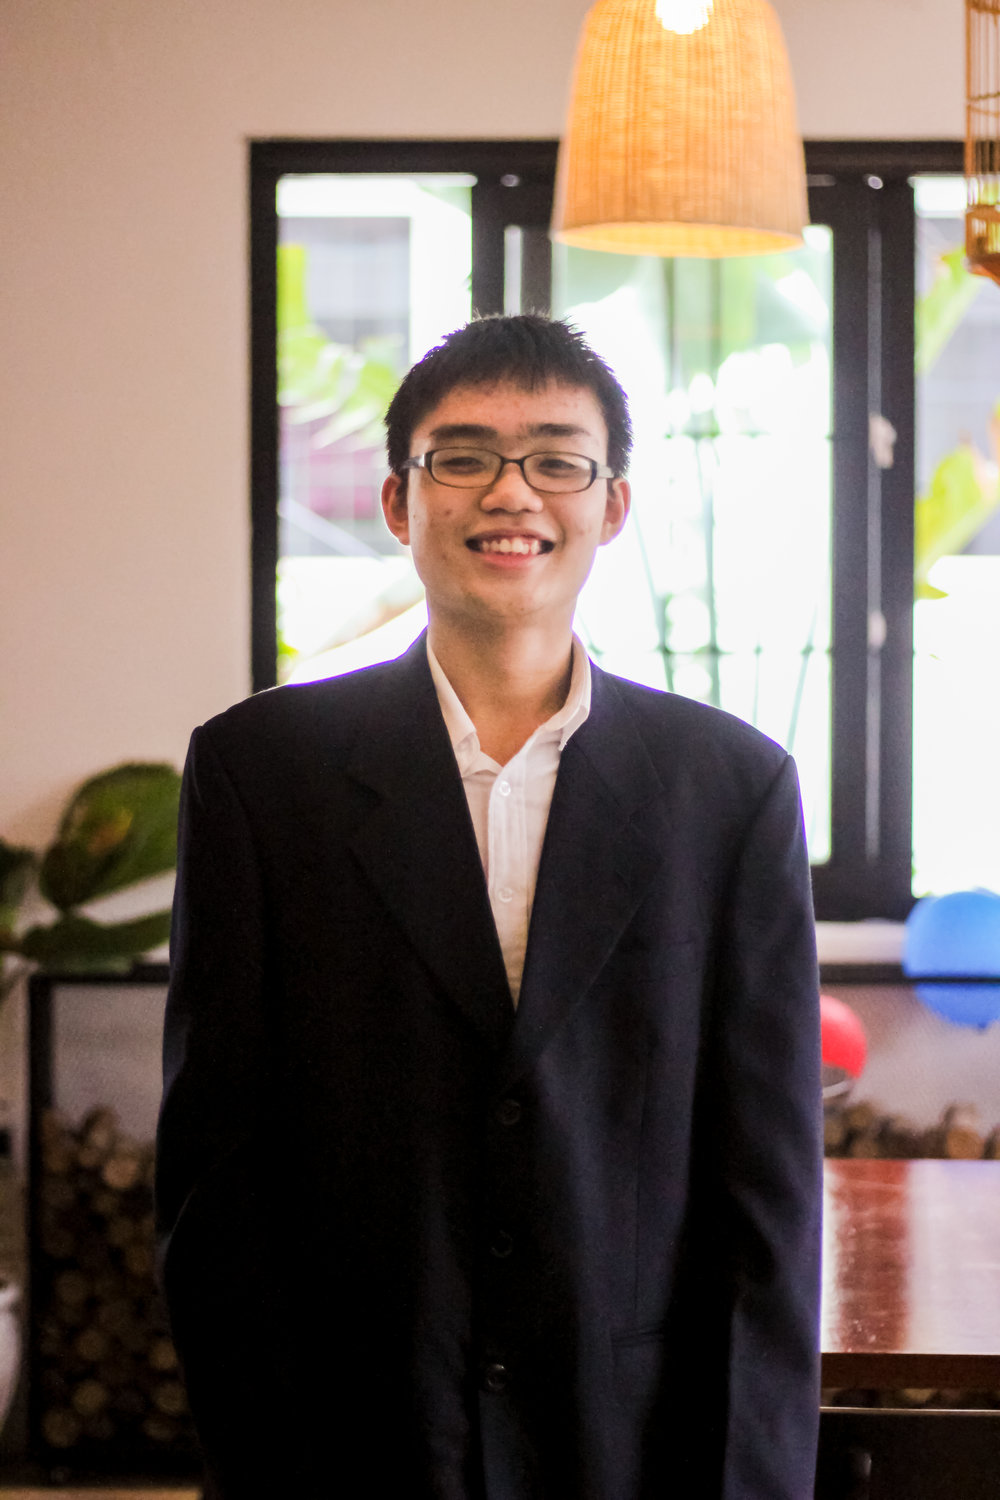 BUSINESS & CONFERENCE    Phan Thanh Anh Quoc  is a junior at the school of Phan Chau Trinh. He grew up in Da Nang and hopes to use her skills to help his city and community. He enjoys working and as a result has worked as a media collaborator for the company that helps students study abroad and has been involved with the Phan Chau Youth Skills Club and the GreenViet Conservation Center.